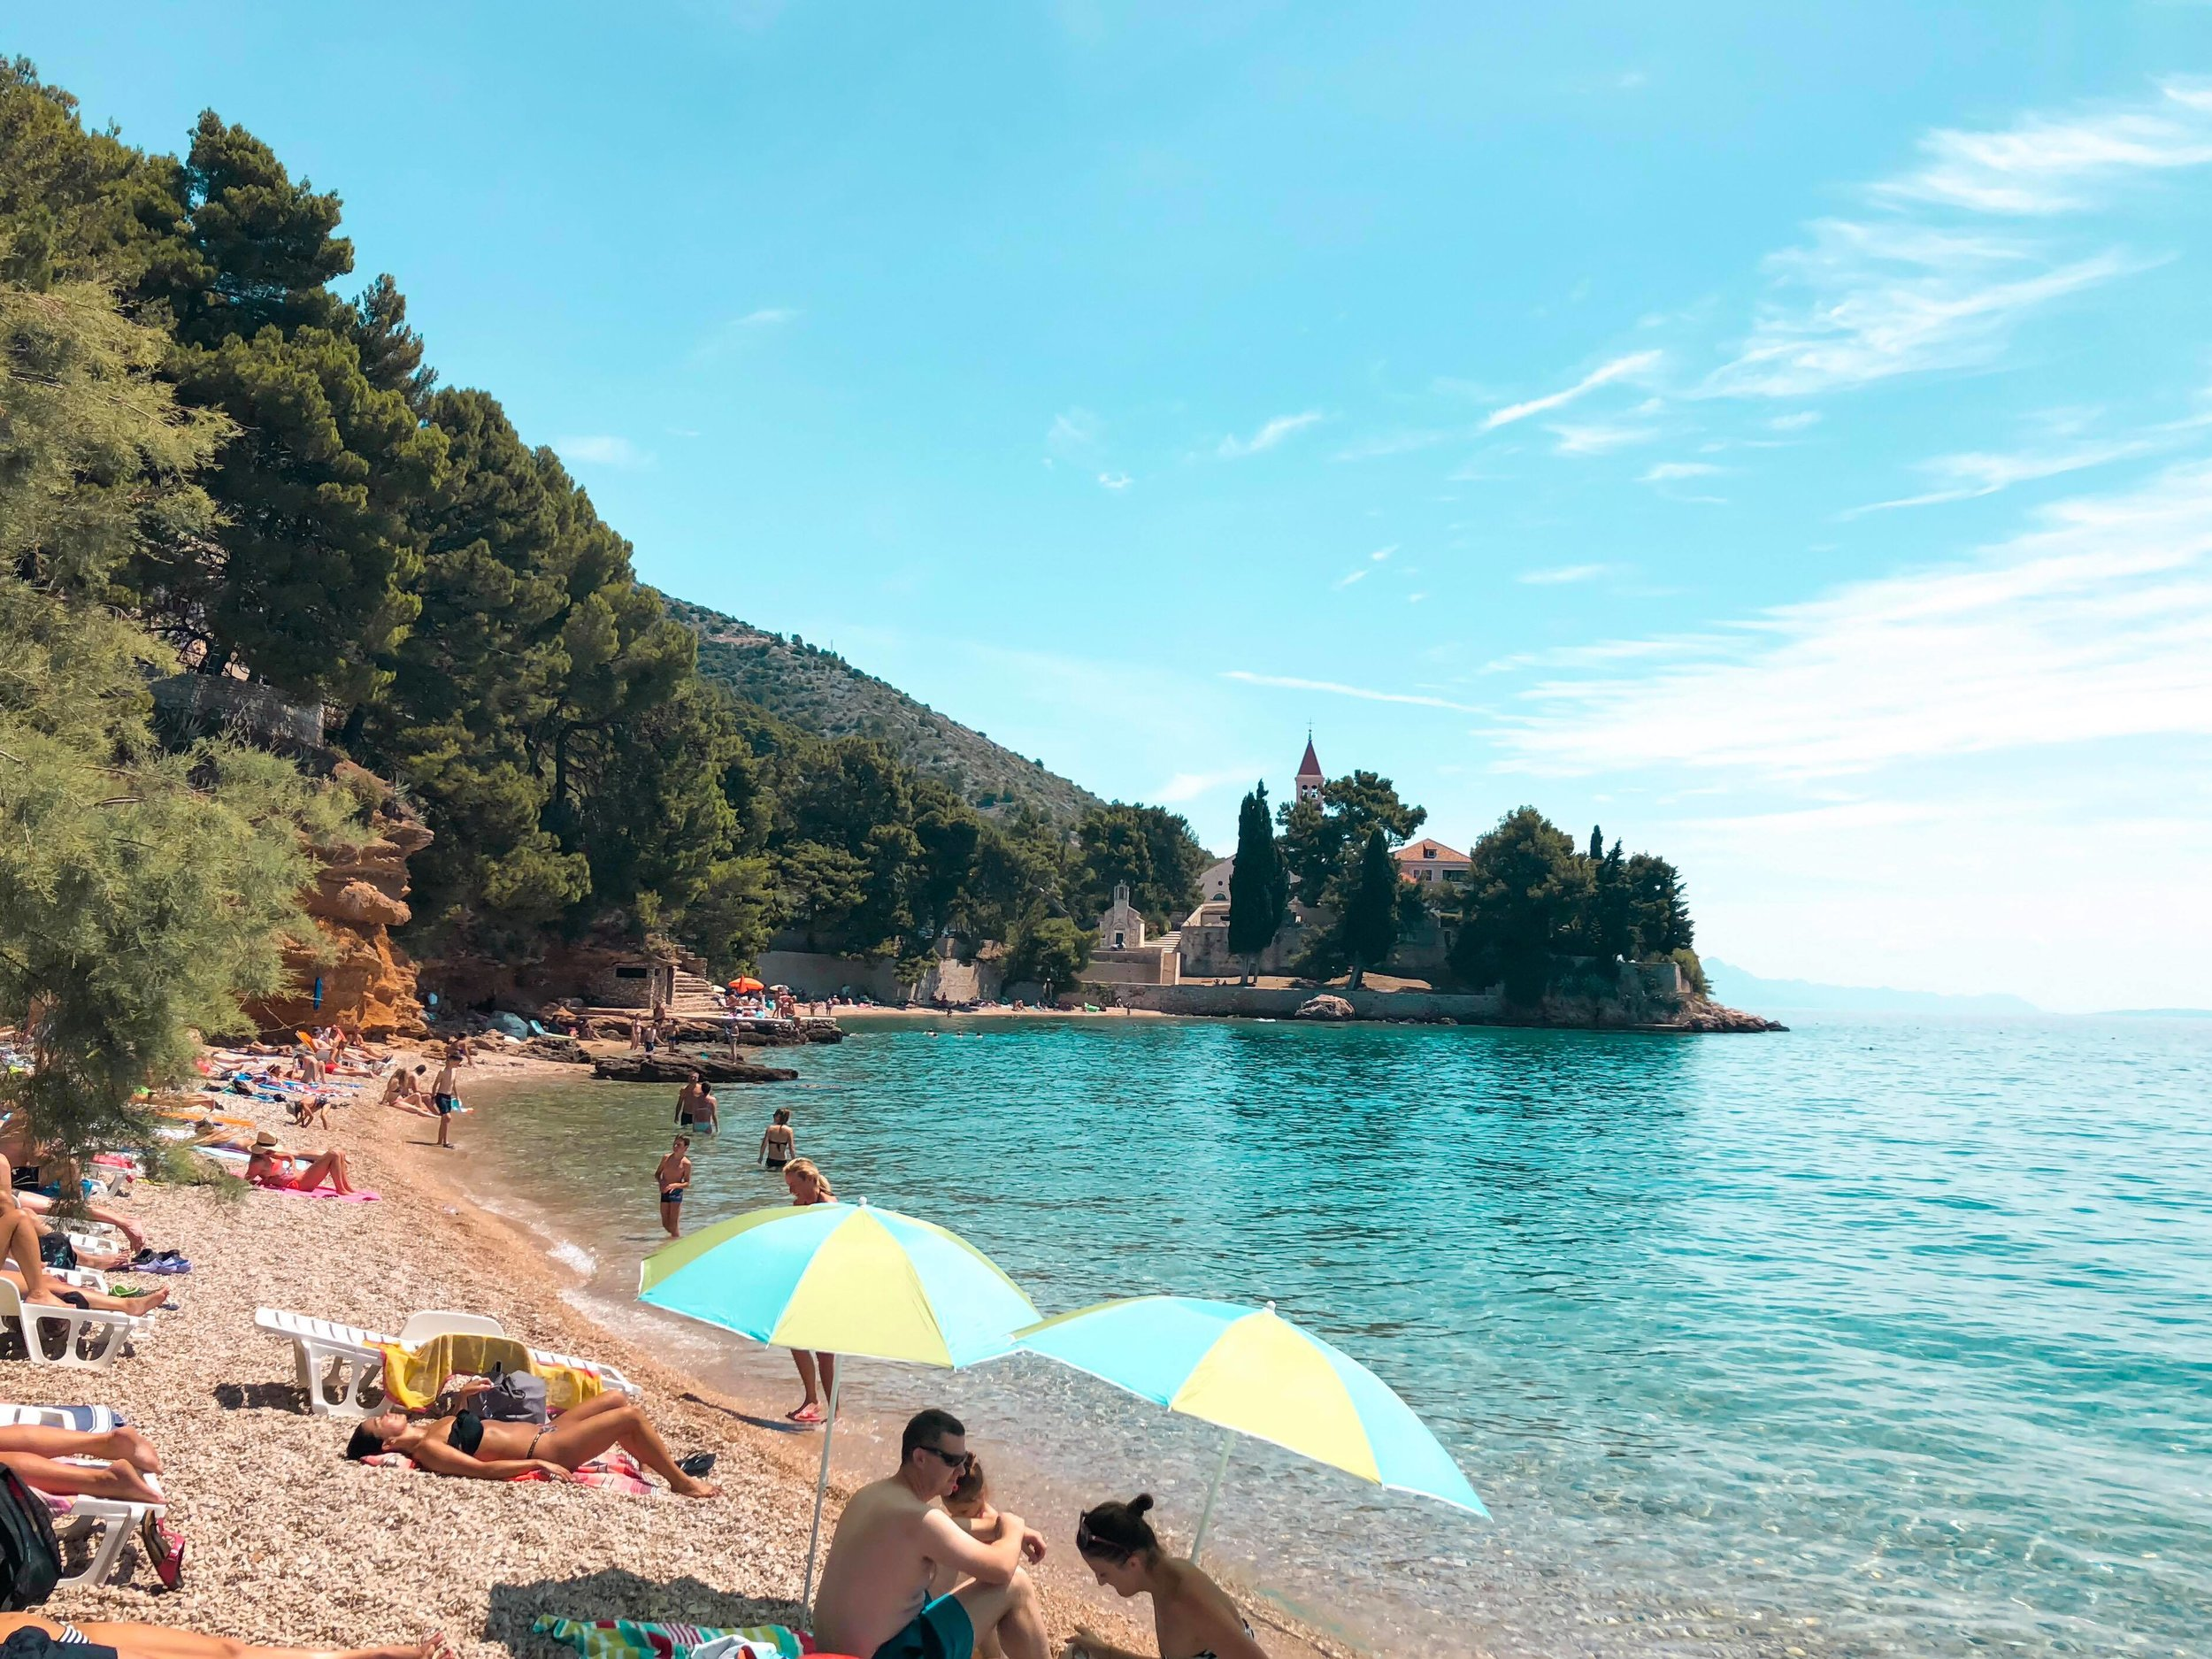 I don't ACtually know the name of this beach in Croatia but I loved it!